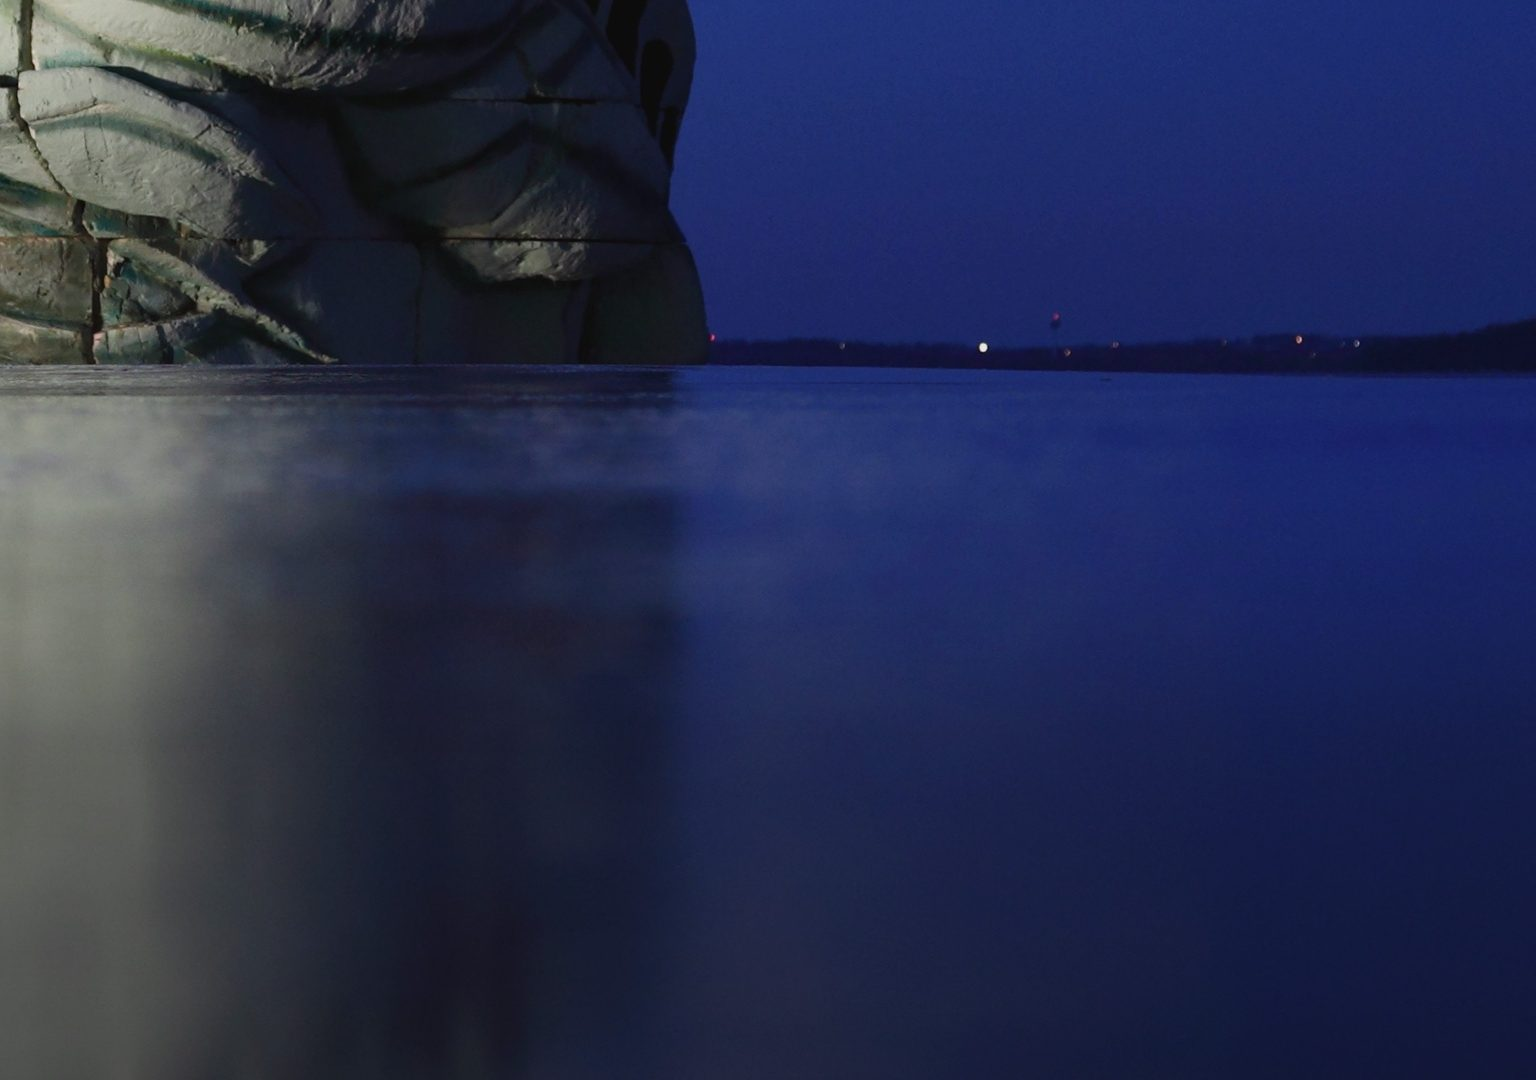 Replica of the top of the head of Statue of Liberty sits atop a frozen lake at night